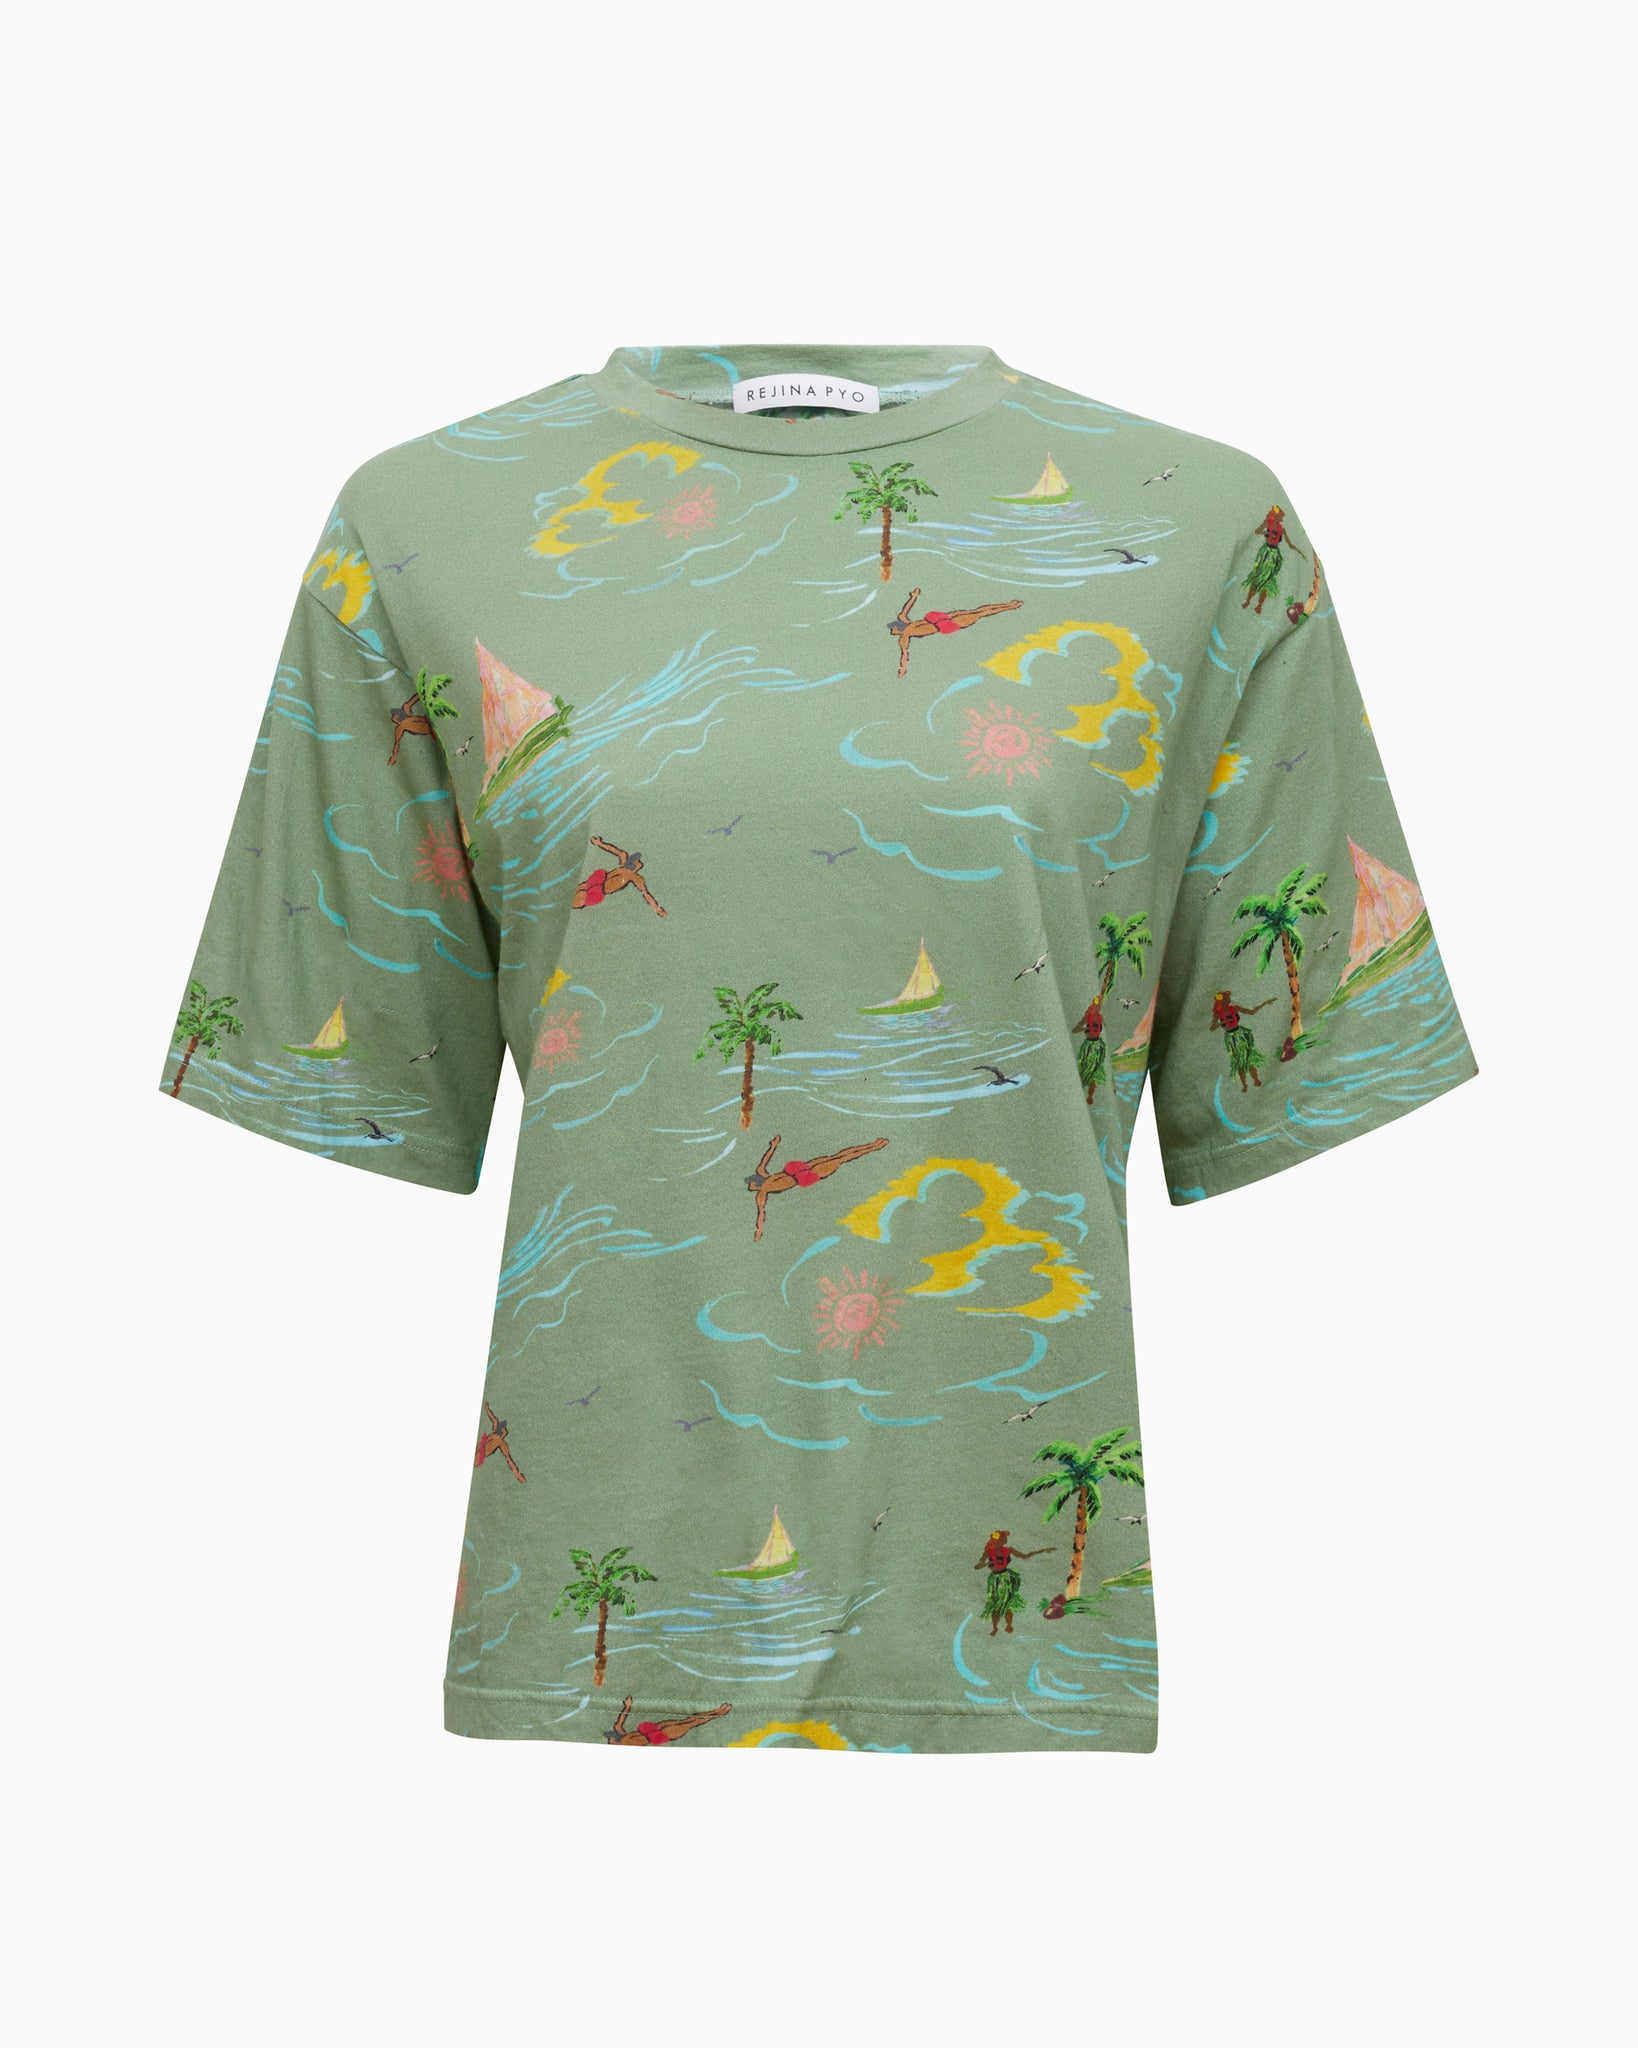 Rhys T-shirt Cotton Jersey Beach Print Khaki